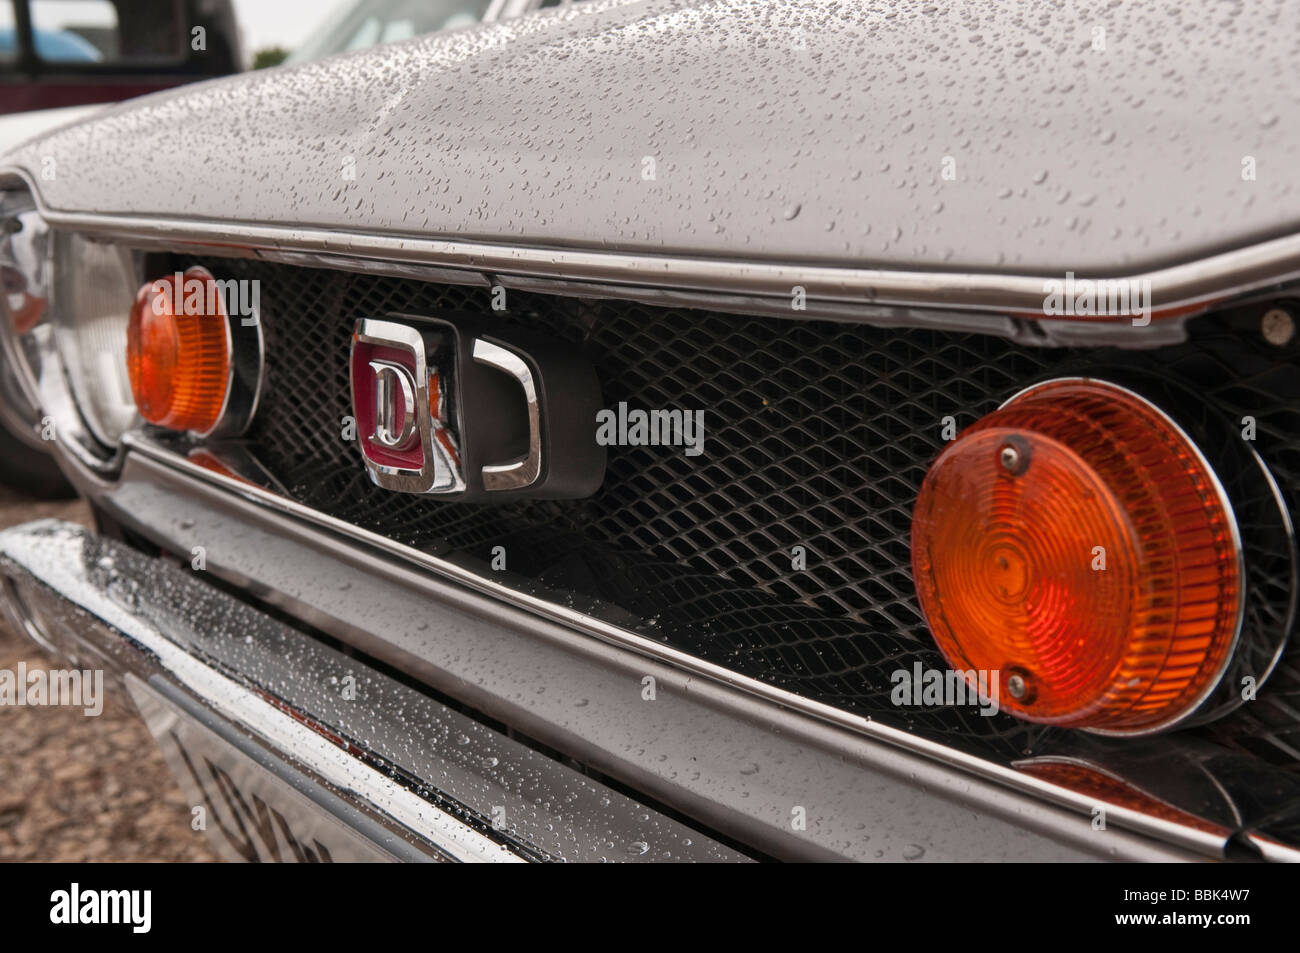 Front grille of a first generation (E10) Datsun 120A, produced from 1970-1977 - Stock Image